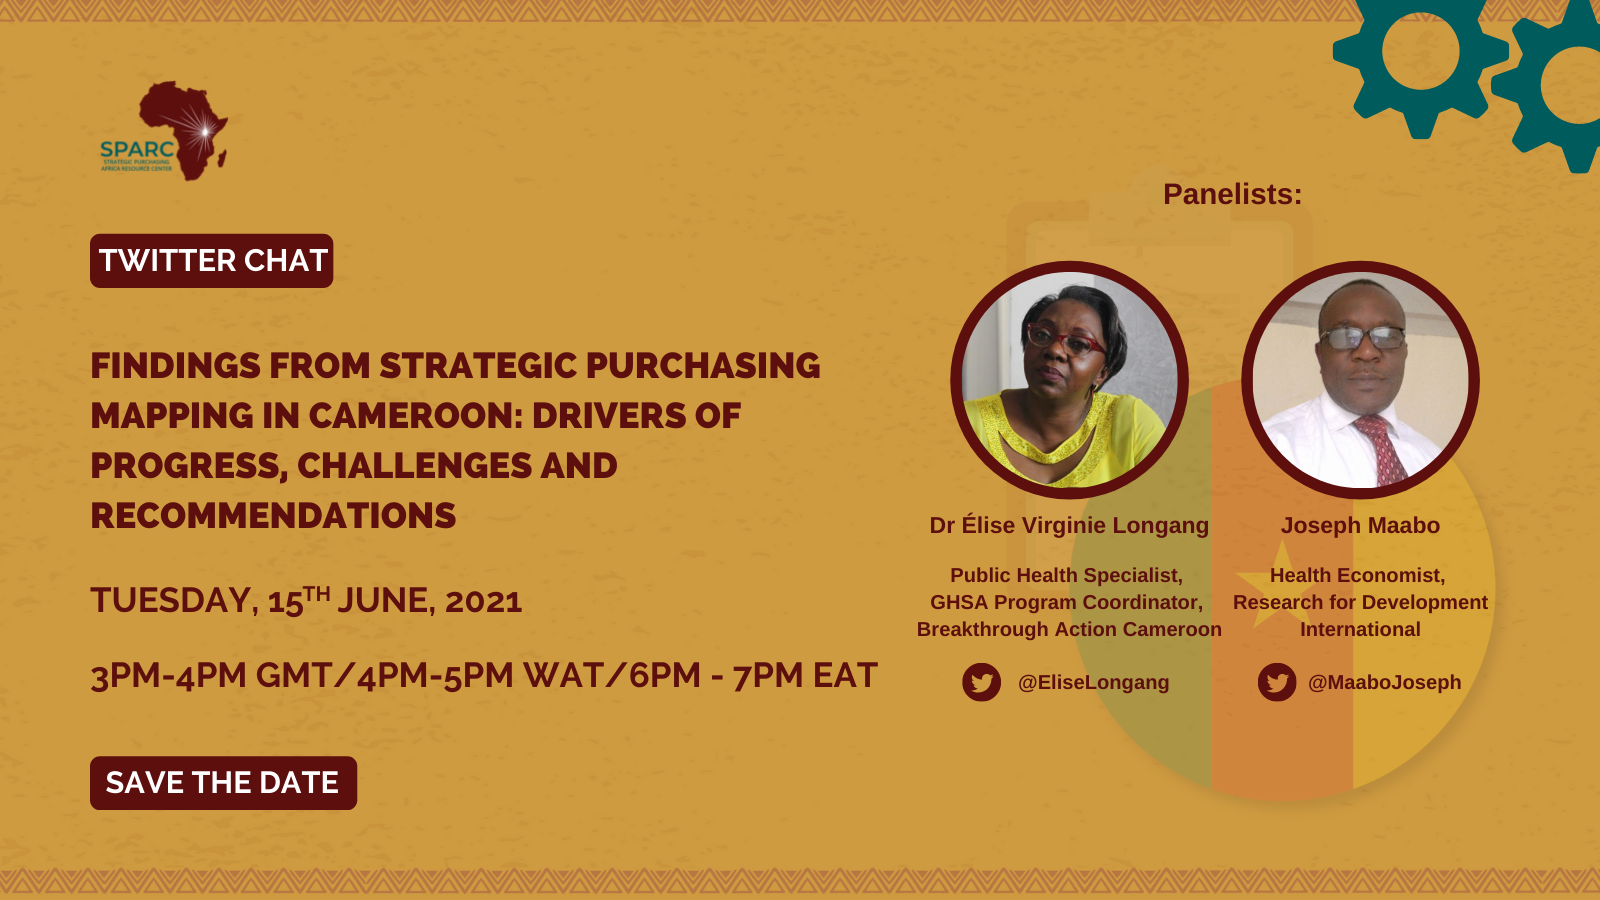 Curated Tweets from SPARCchat 14: 'Findings from Strategic Purchasing Mapping in Cameroon: Drivers of Progress, Challenges and Recommendations'